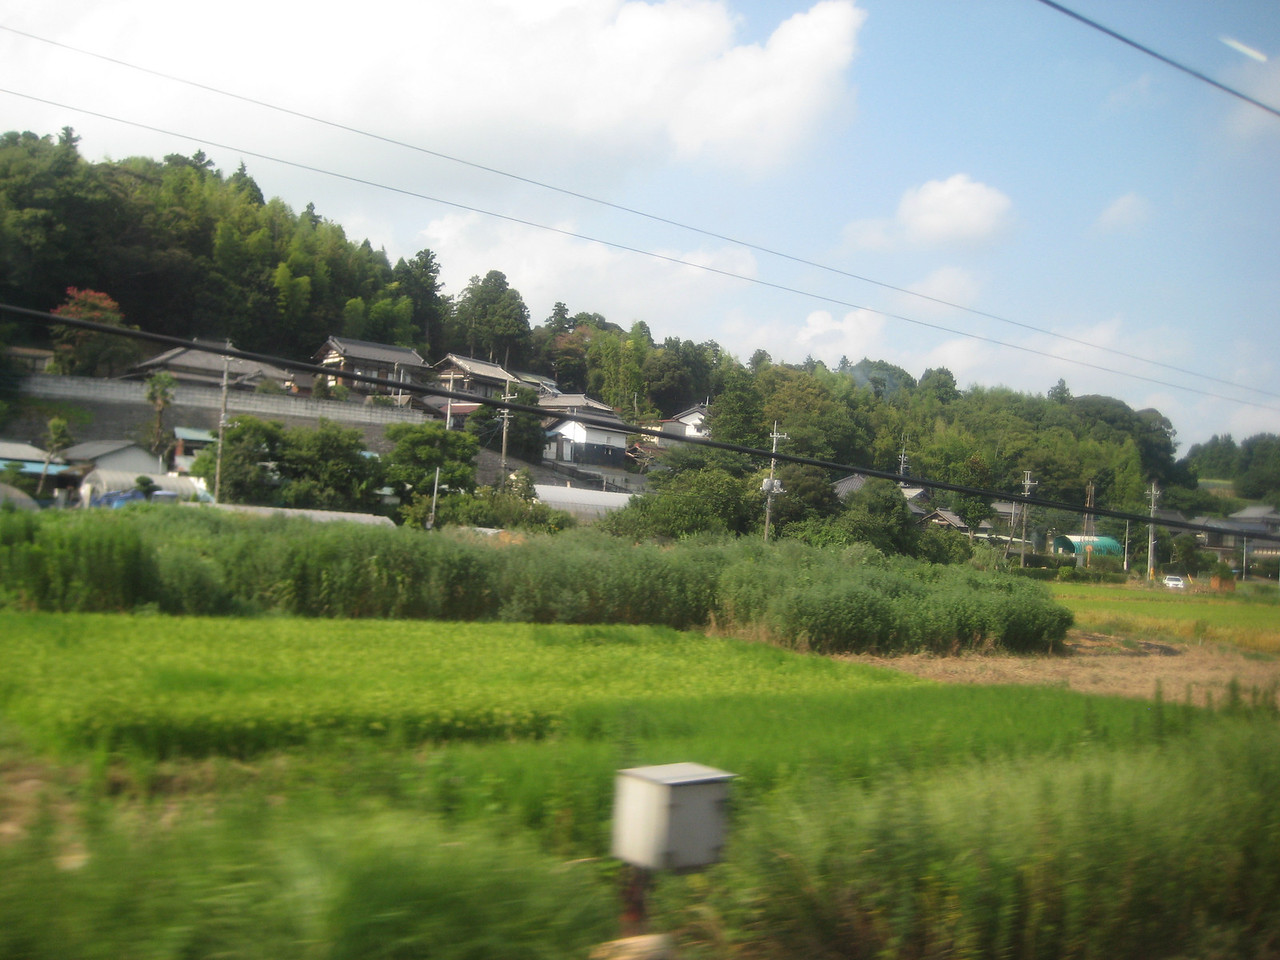 It was now about 3 PM. We had been traveling maybe an hour or so. As crowded as Japan is, I'm amazed that there is still so much greenery to be seen.